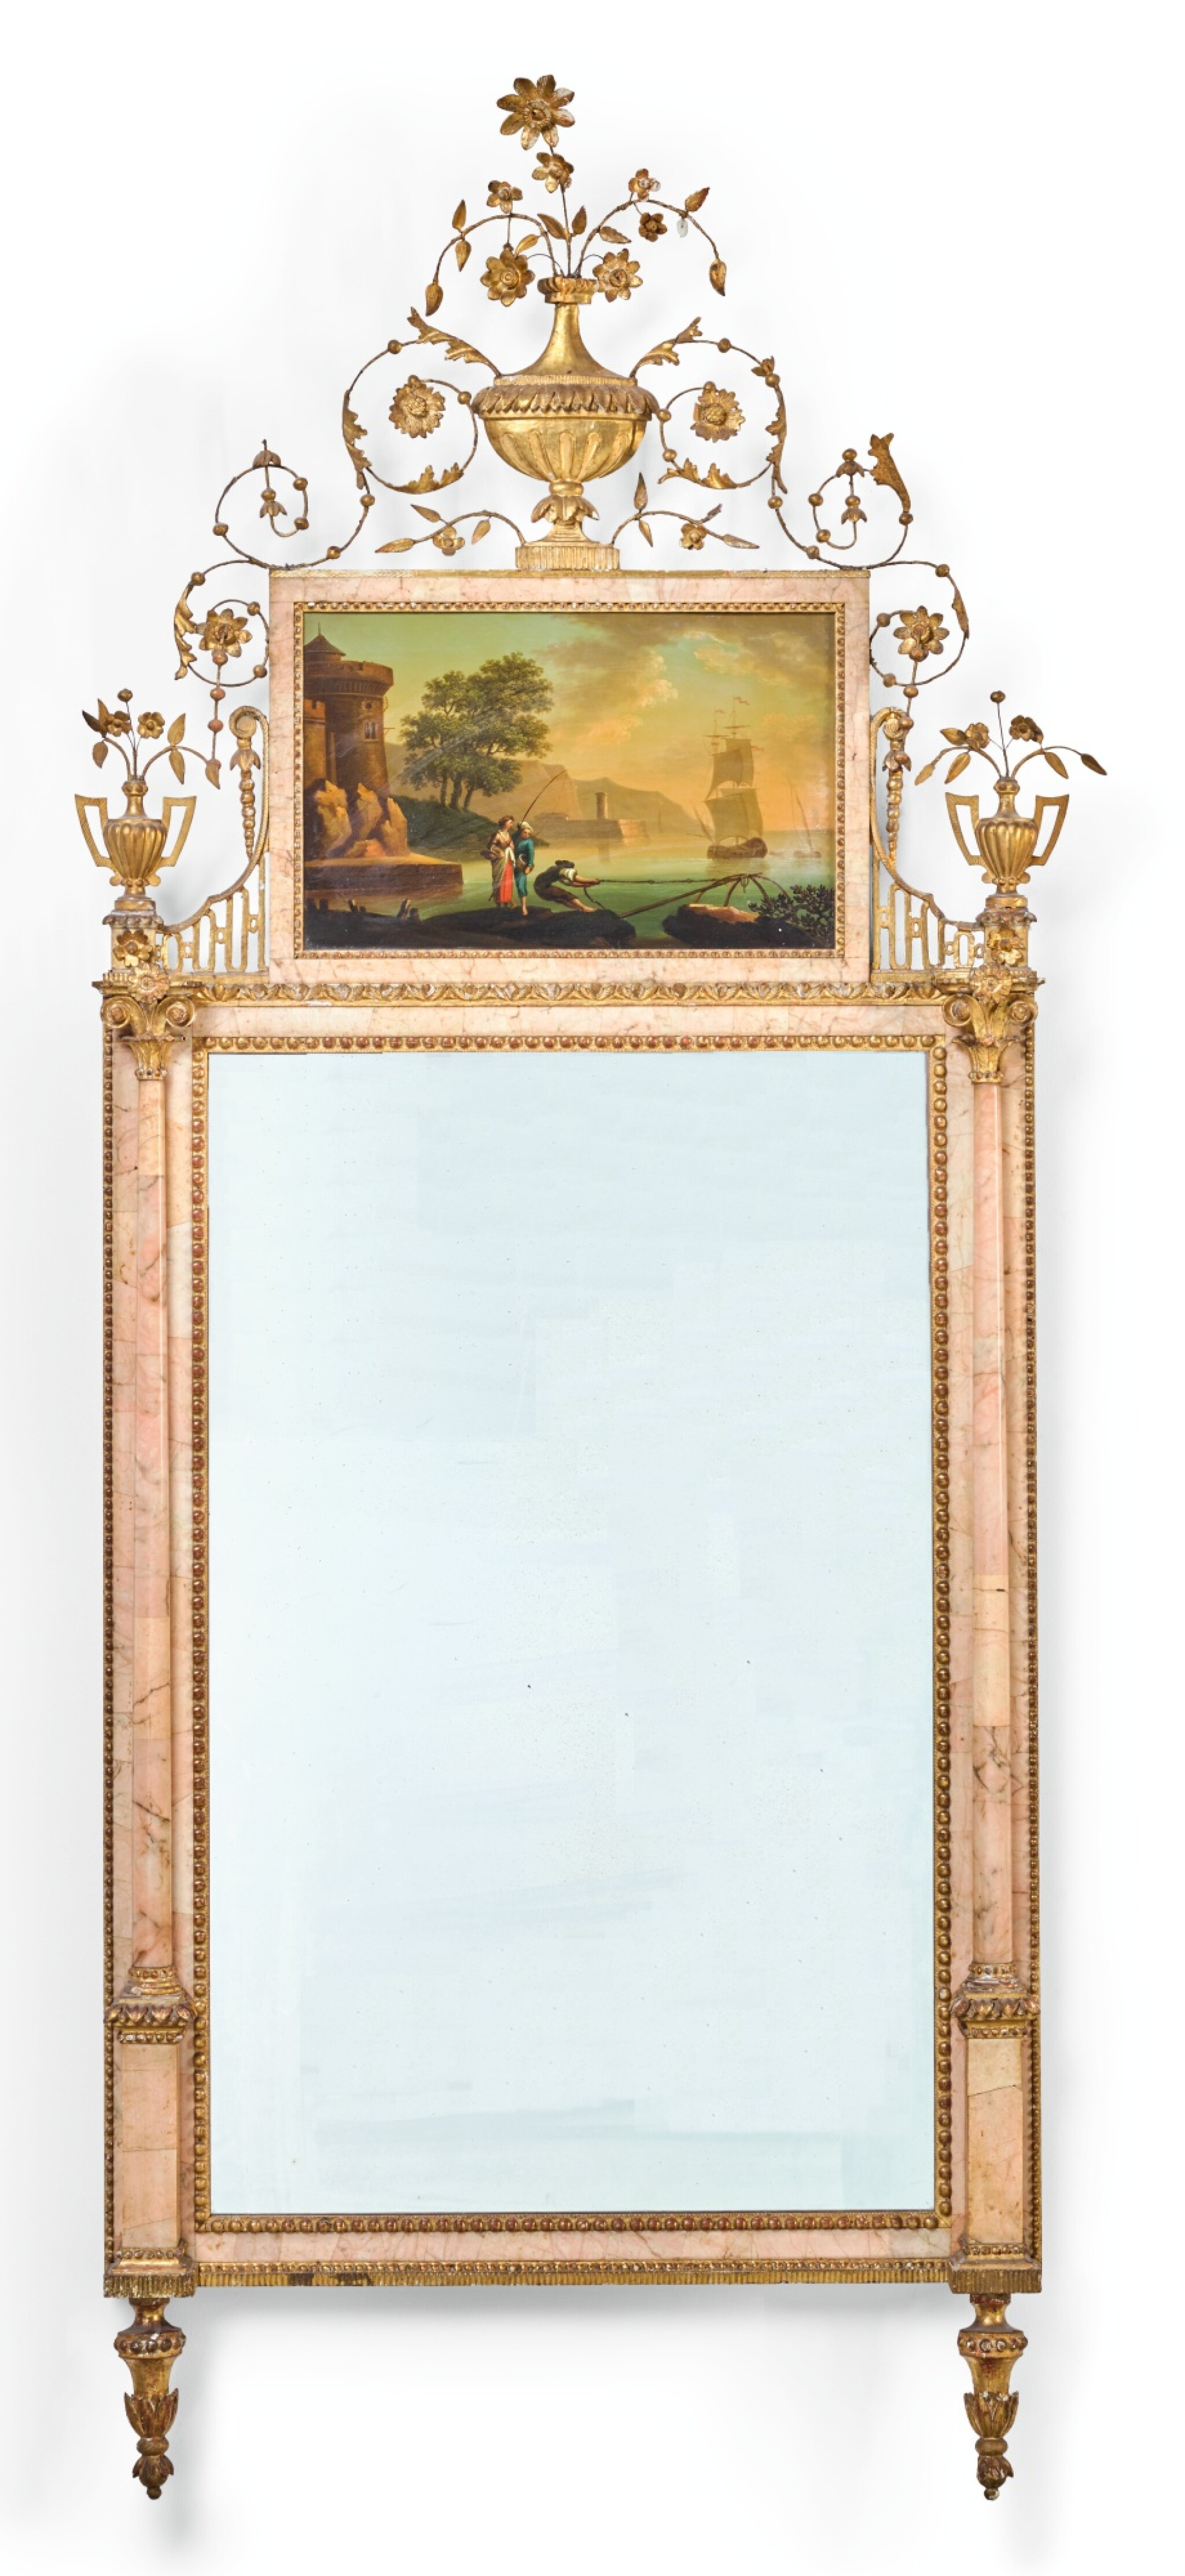 View full screen - View 1 of Lot 81. A CARLOS IV NEOCLASSICAL GILT-METAL AND PINK MARBLE VENEERED MIRROR, BILBAO CIRCA 1780.